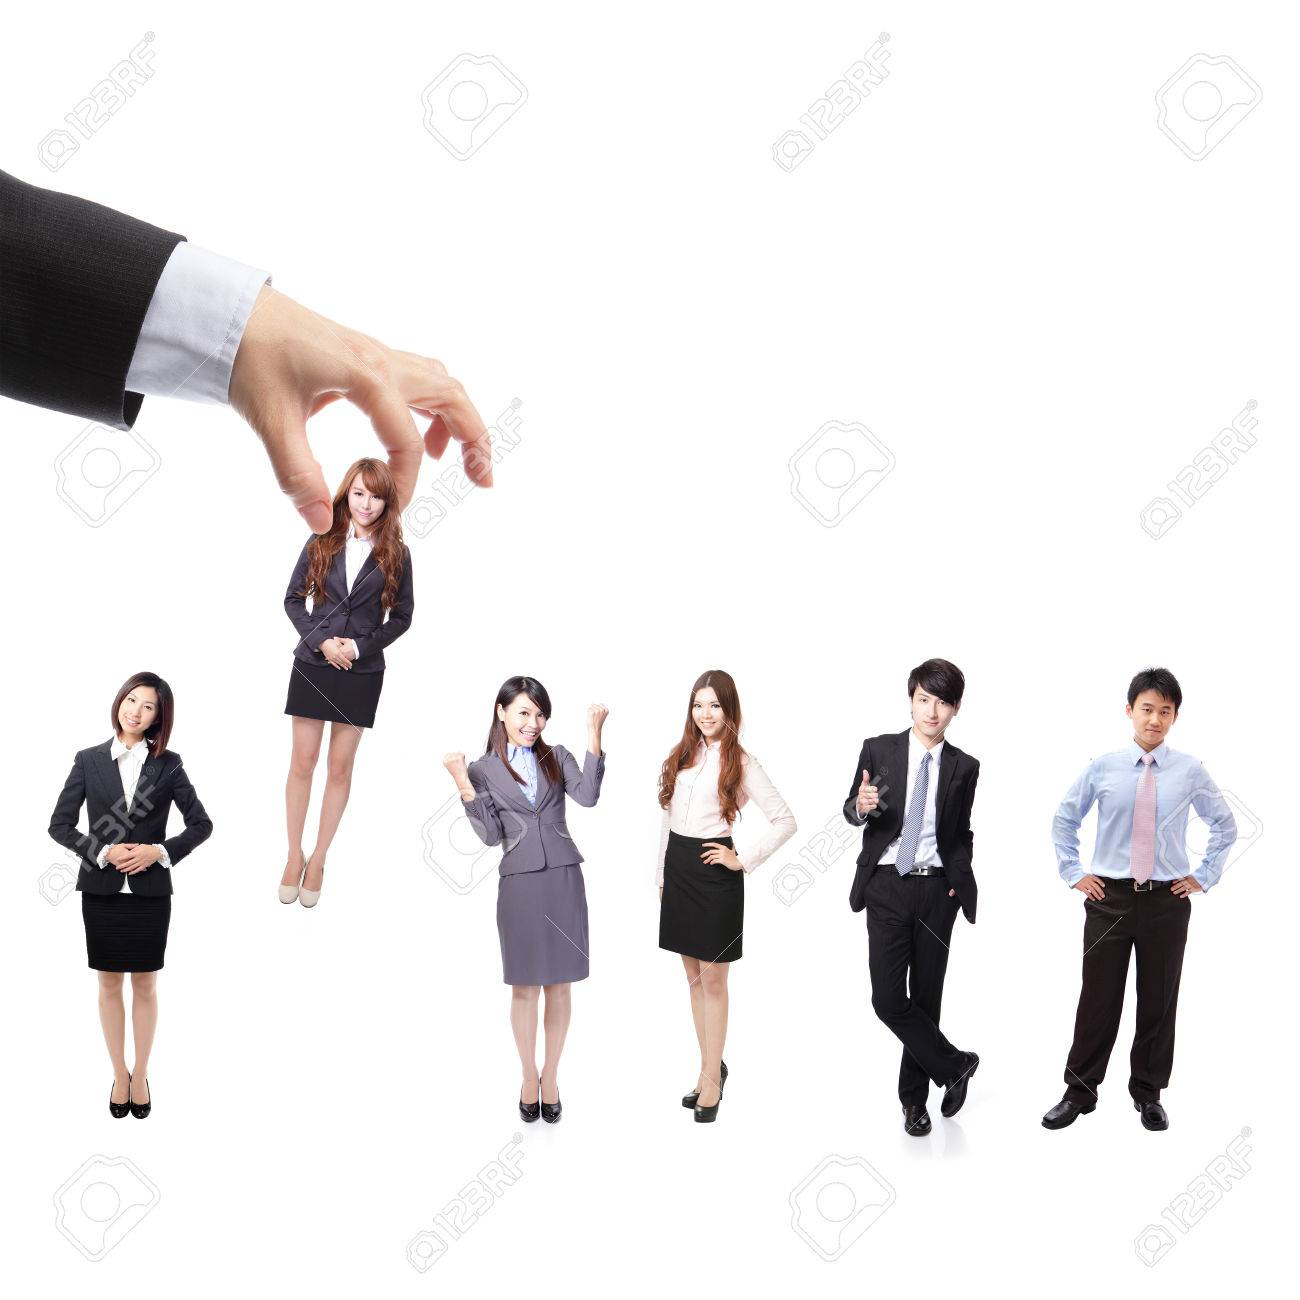 human resources concept choosing the perfect candidate business human resources concept choosing the perfect candidate business man for the job